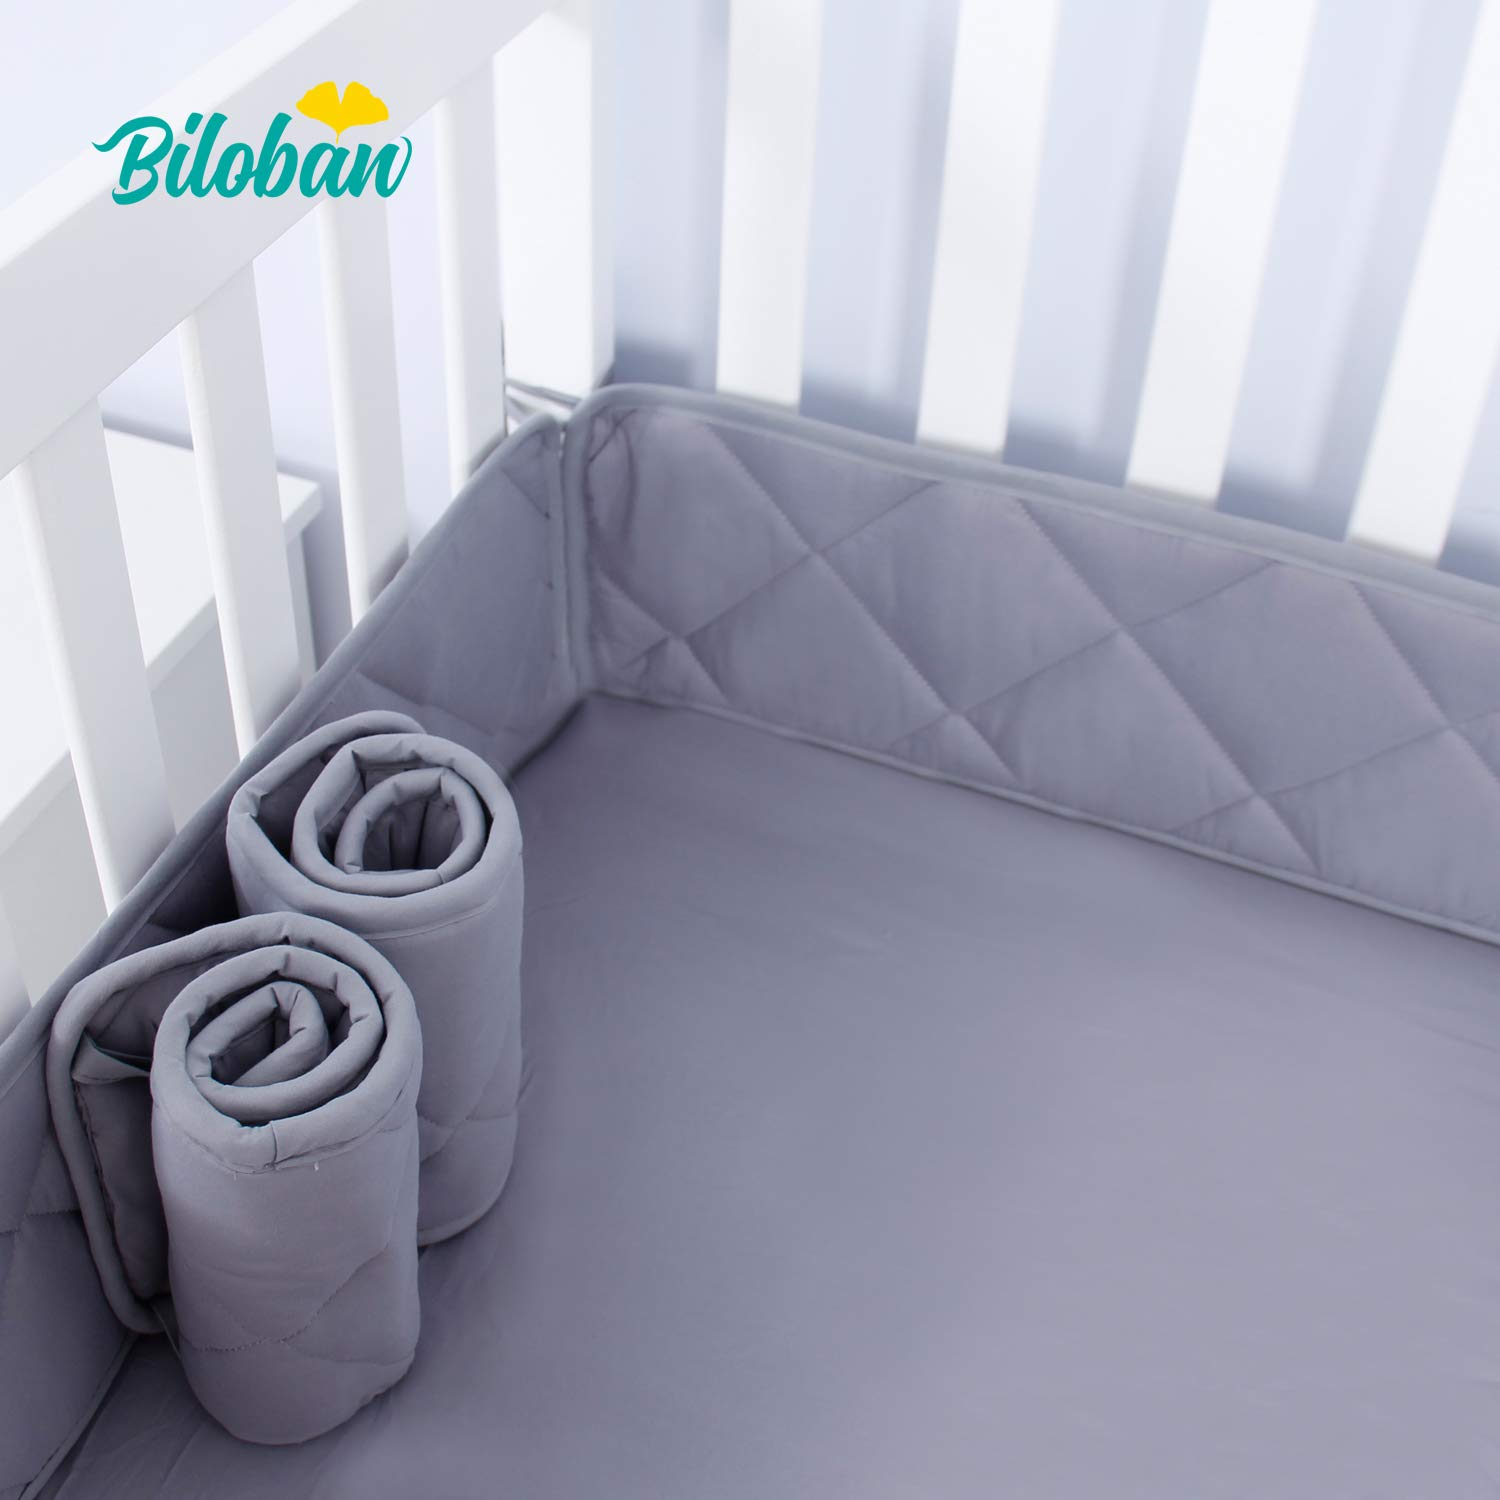 """Nursery Mini Crib Bumper Pads for Boys, Fits for Size 24""""x 38"""" Machine Washable Baby Portable Crib Bumpers, Ultra Soft 4 Pieces for Baby Mini Crib Liners Padded, Gray"""